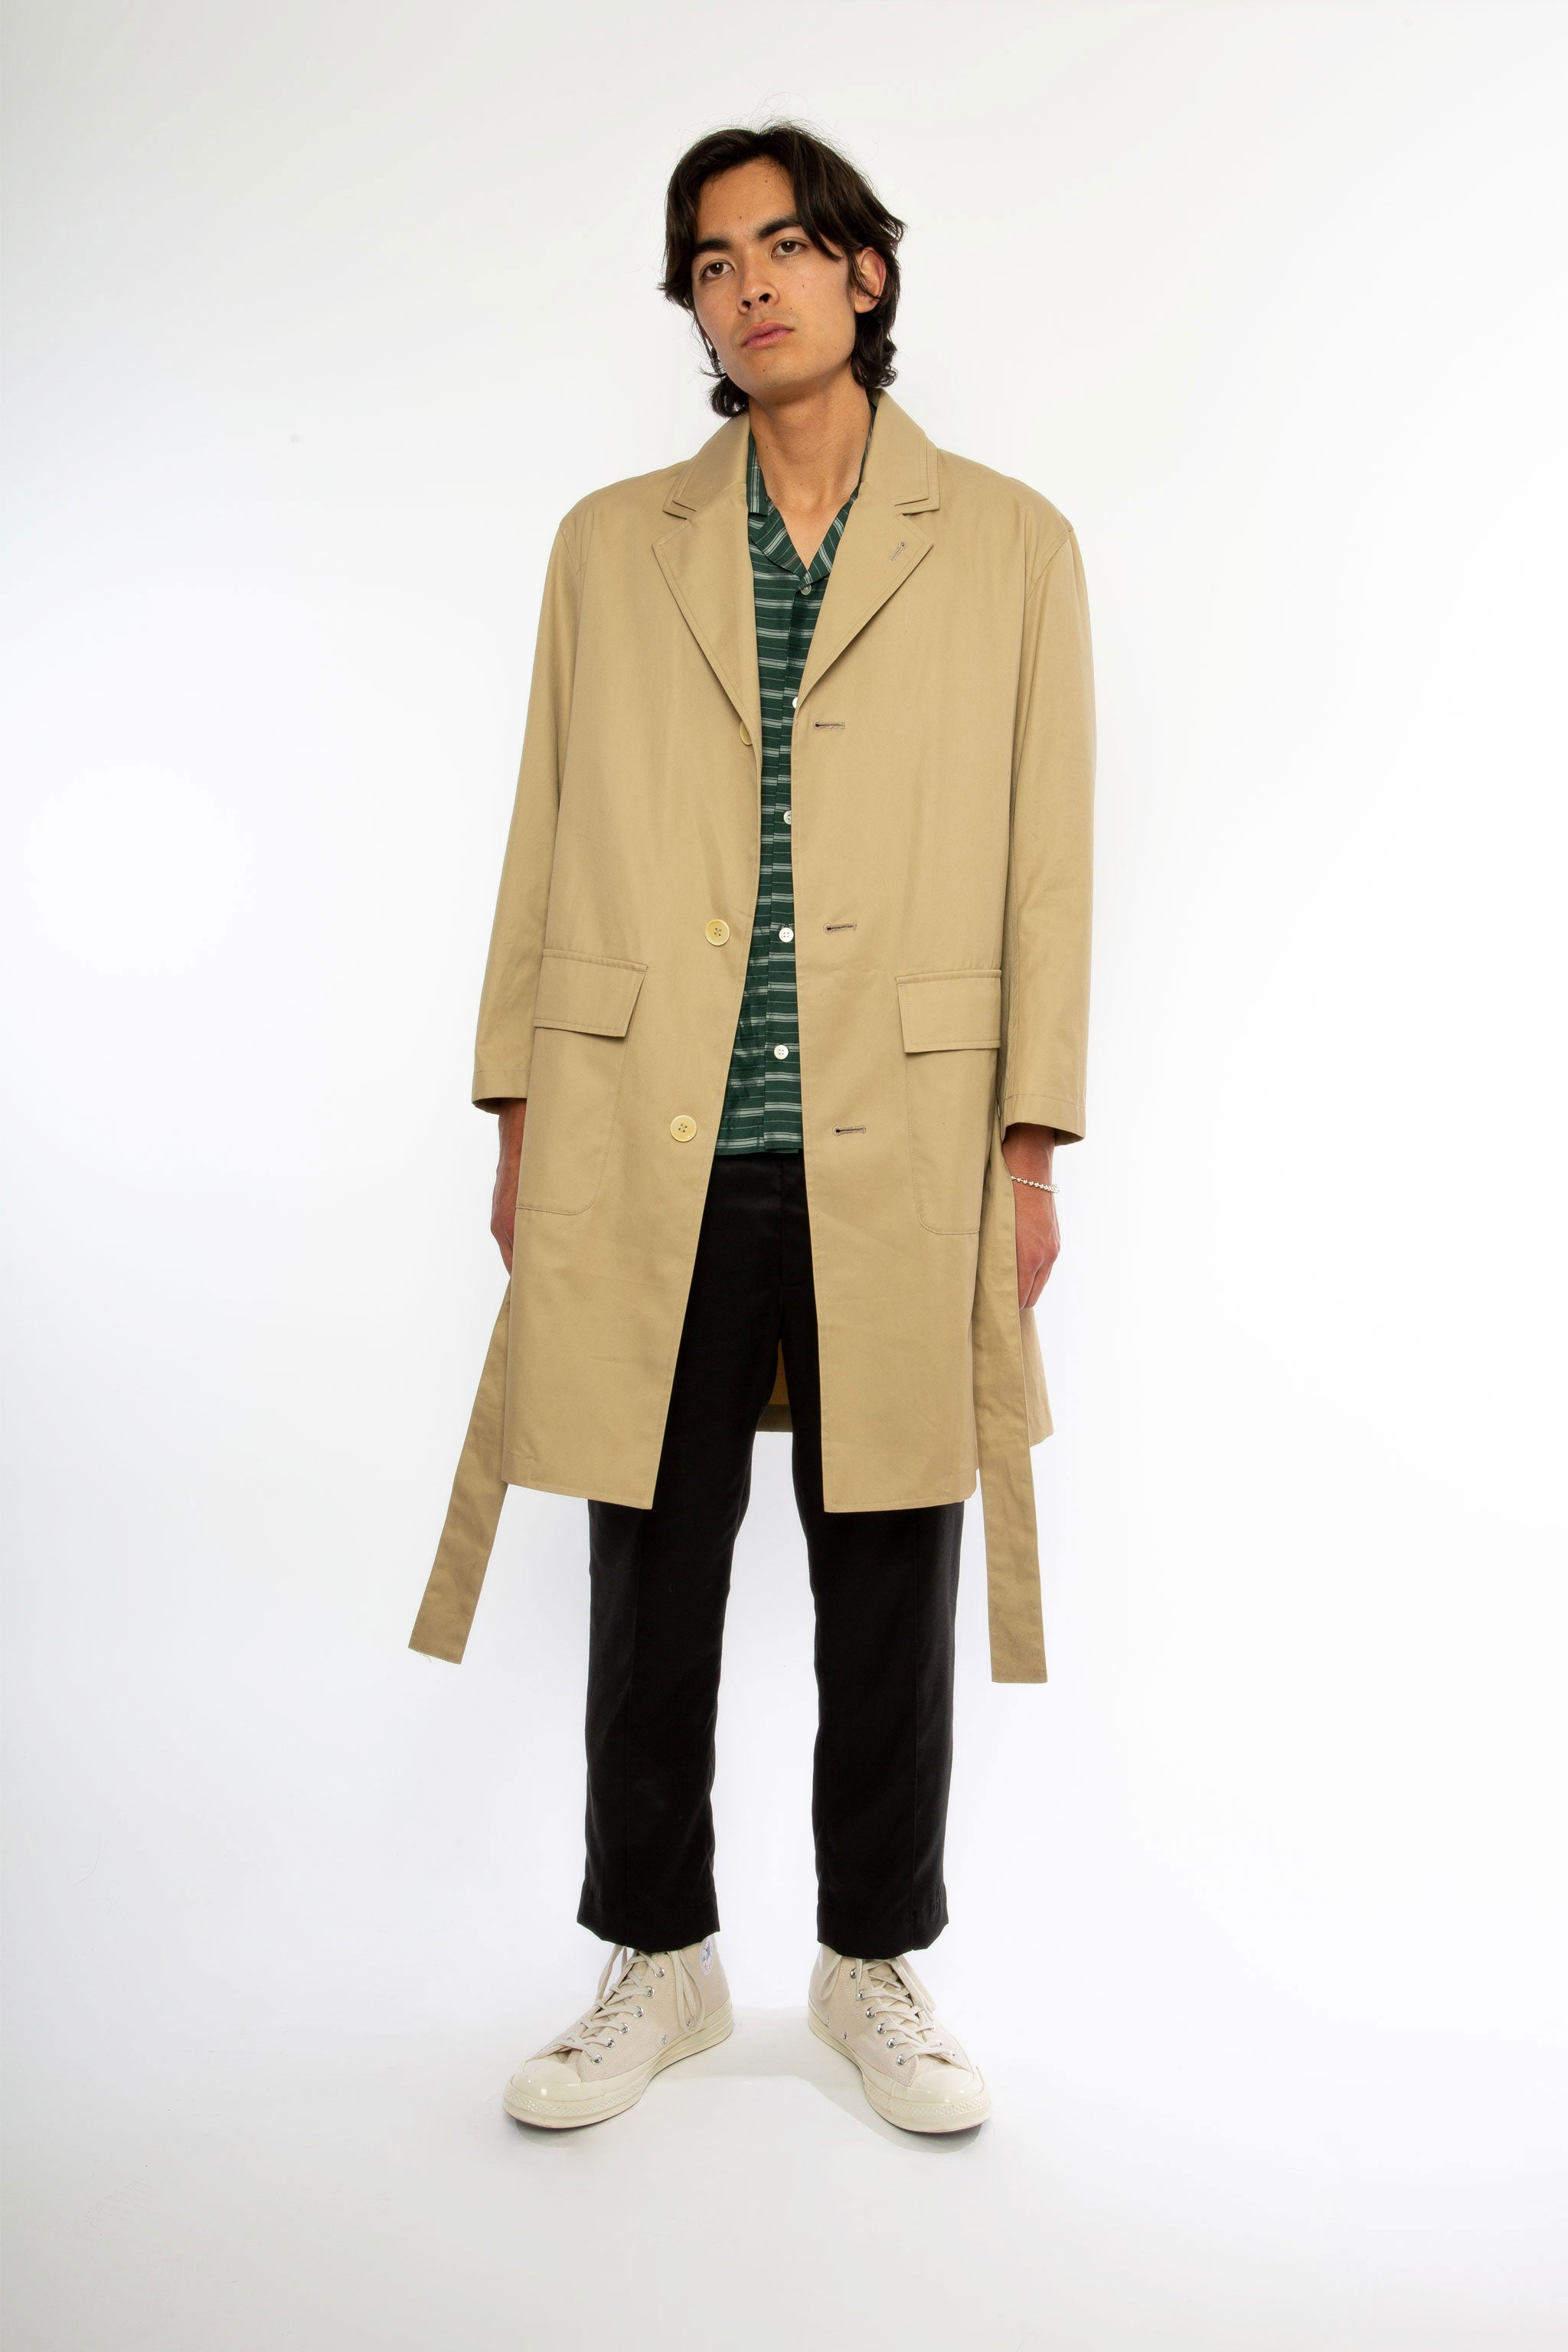 Goodfight SS19 Spring Clean Trench Khaki